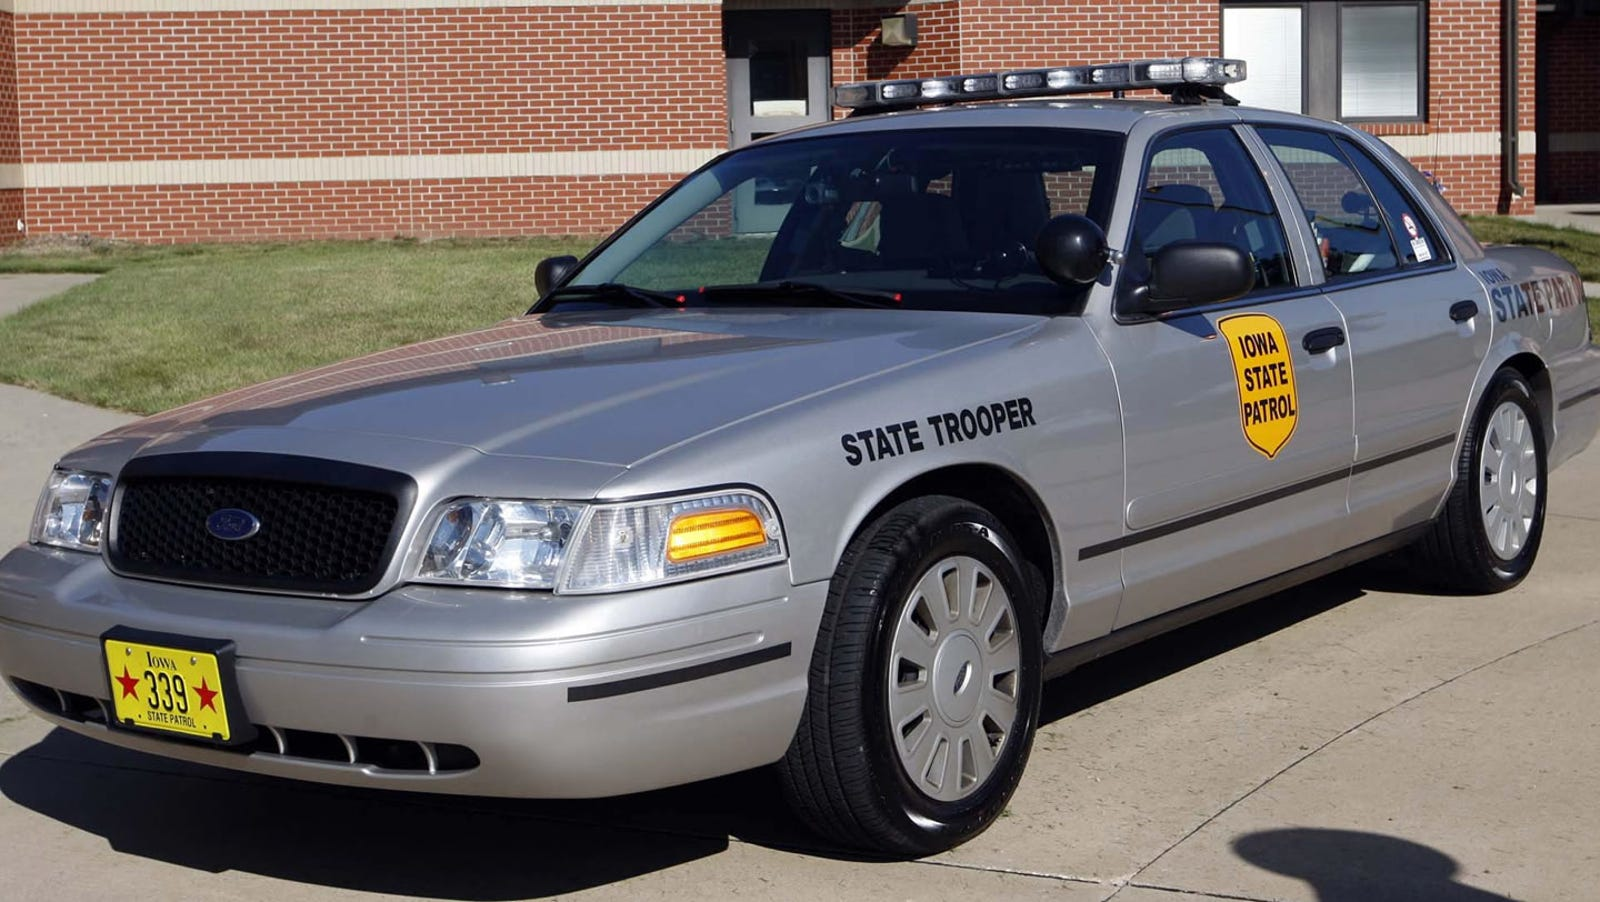 I-35 chase ends near Ankeny; driver was on passenger side, State Patrol says